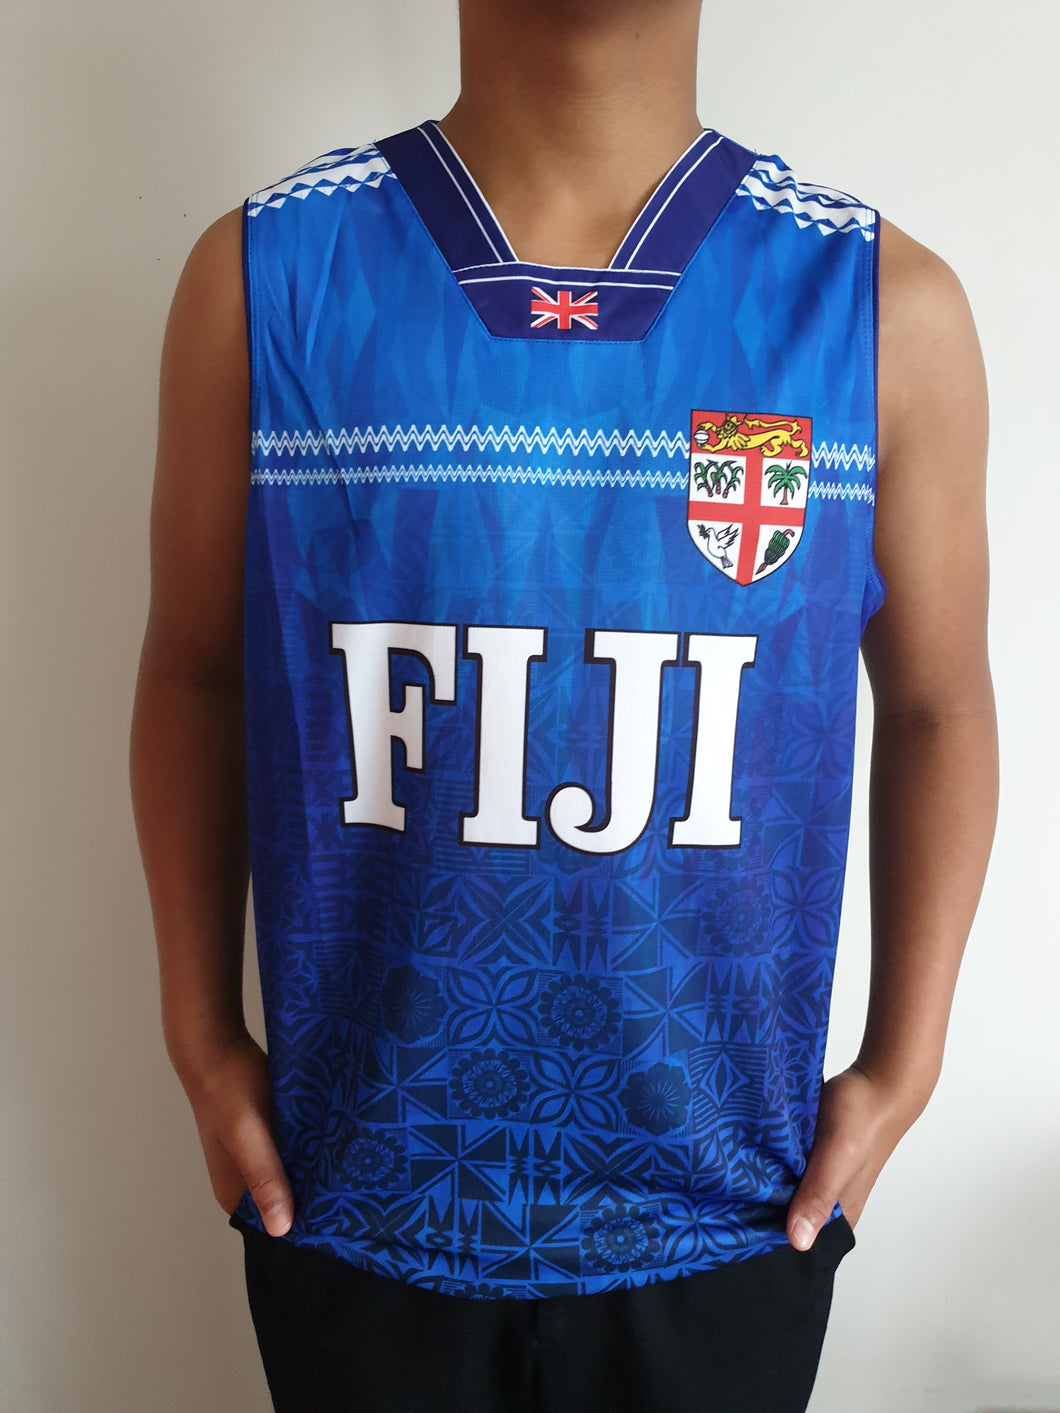 Fiji Daily Sublimation Vest -TM2095 Royal